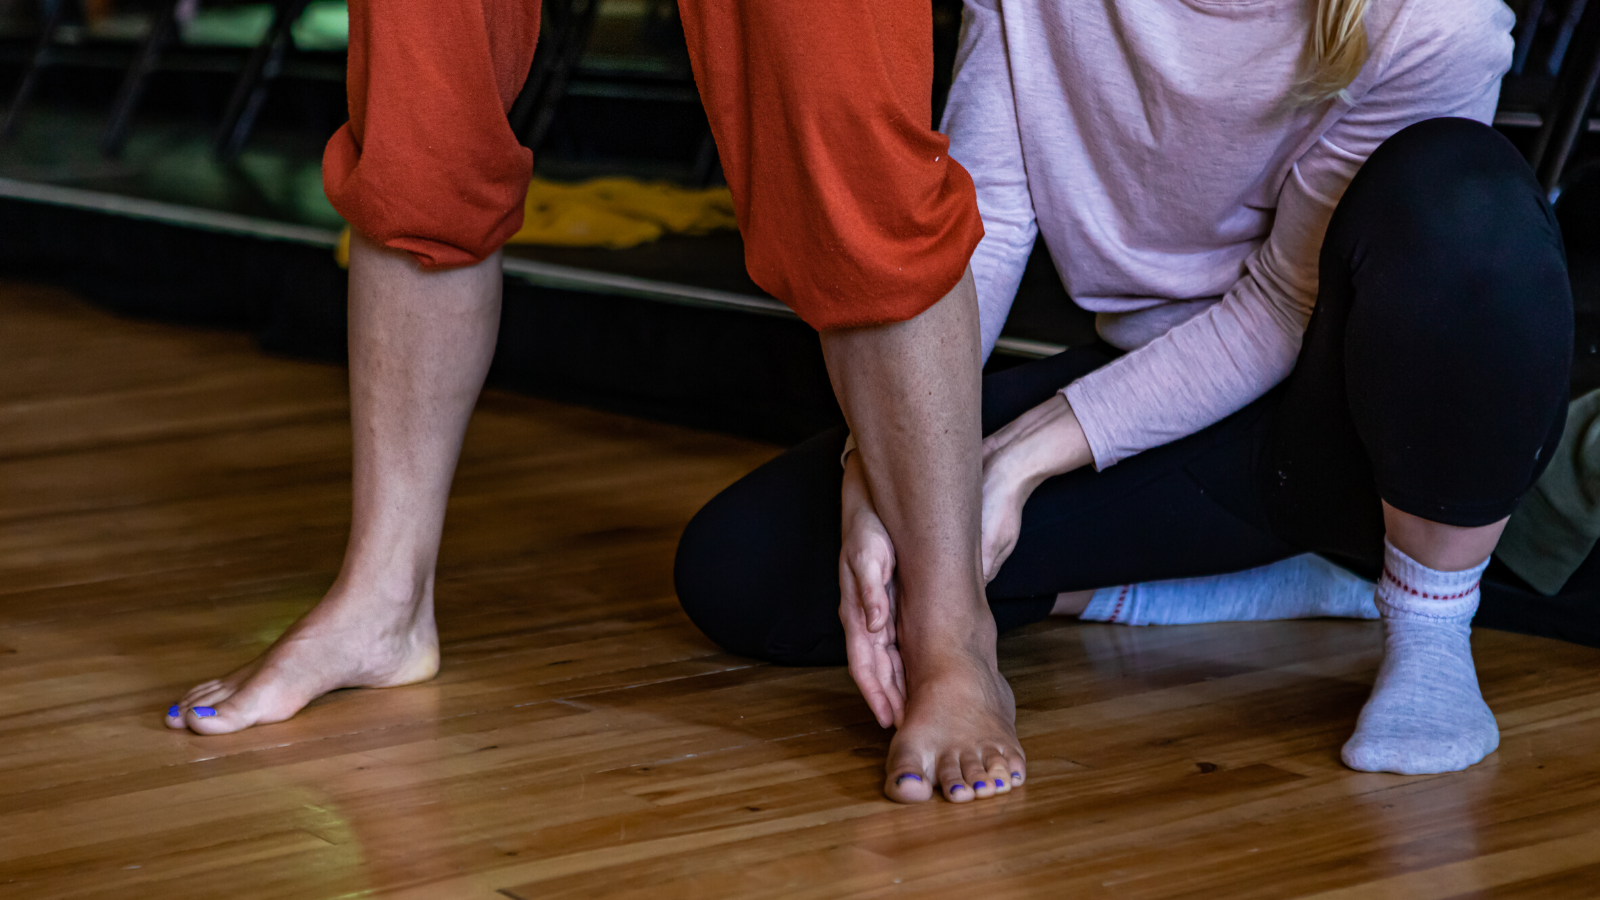 Yoga teacher adjusting student's stance in yoga class